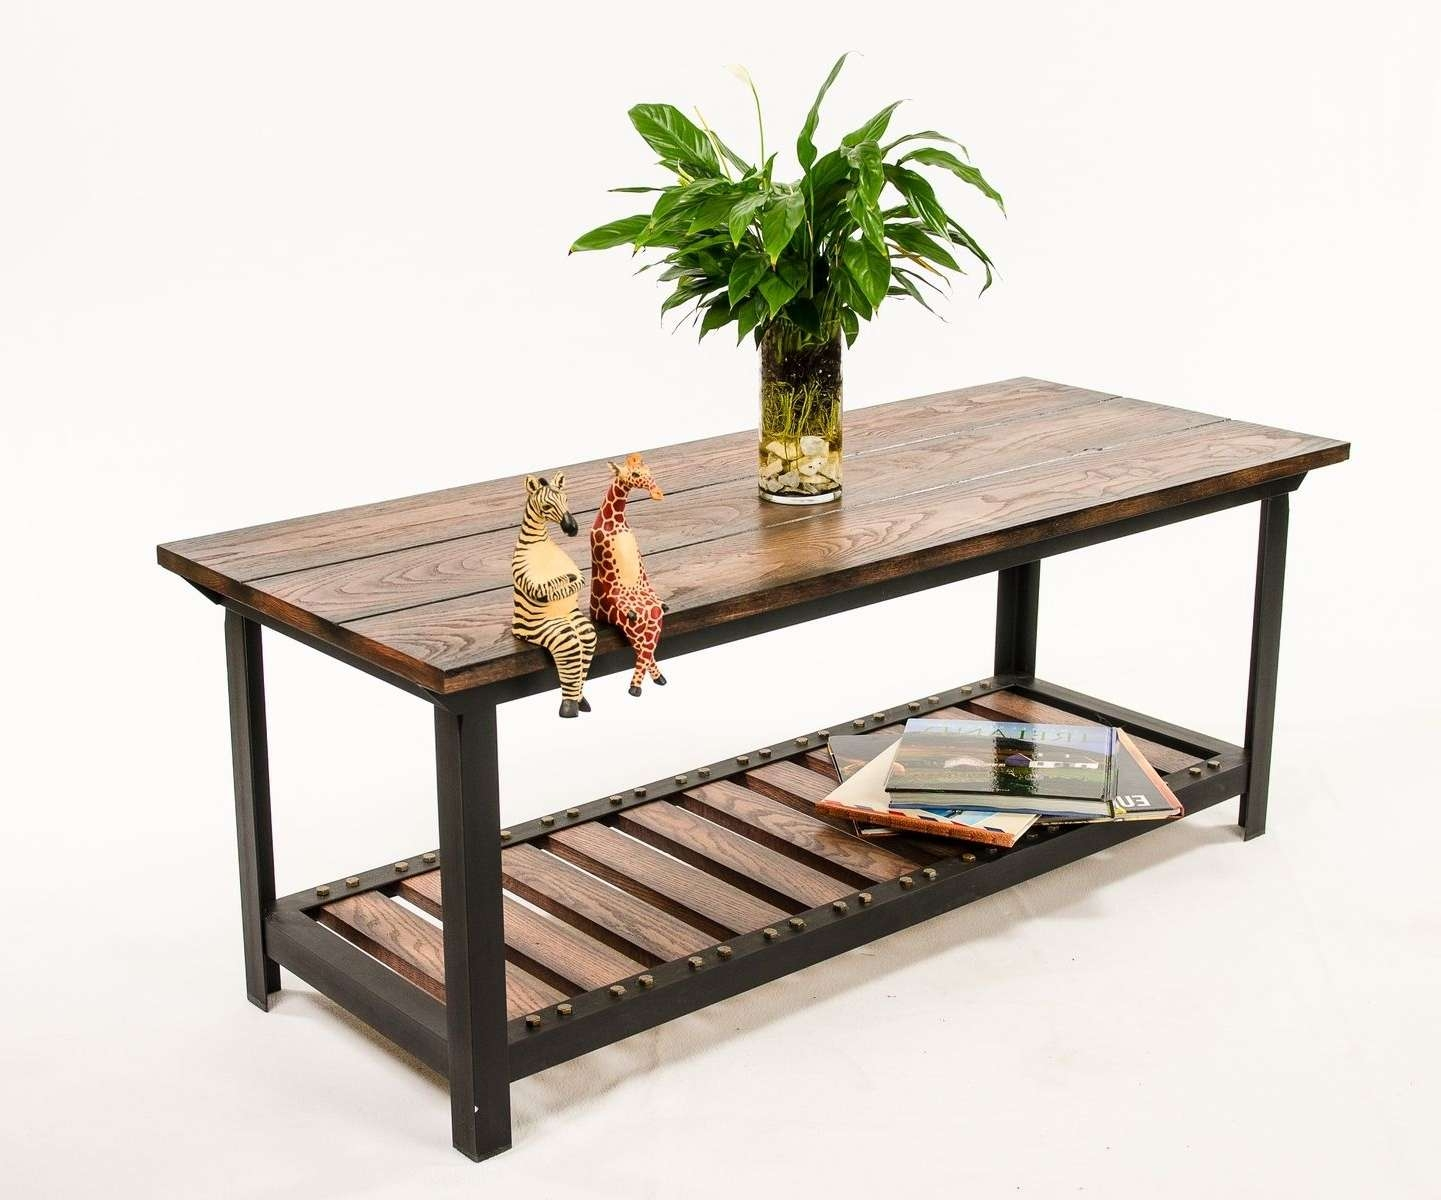 Custom Made Vintage Industrial Style Coffee Tableagainst The Throughout Most Recent Coffee Table Industrial Style (View 18 of 20)